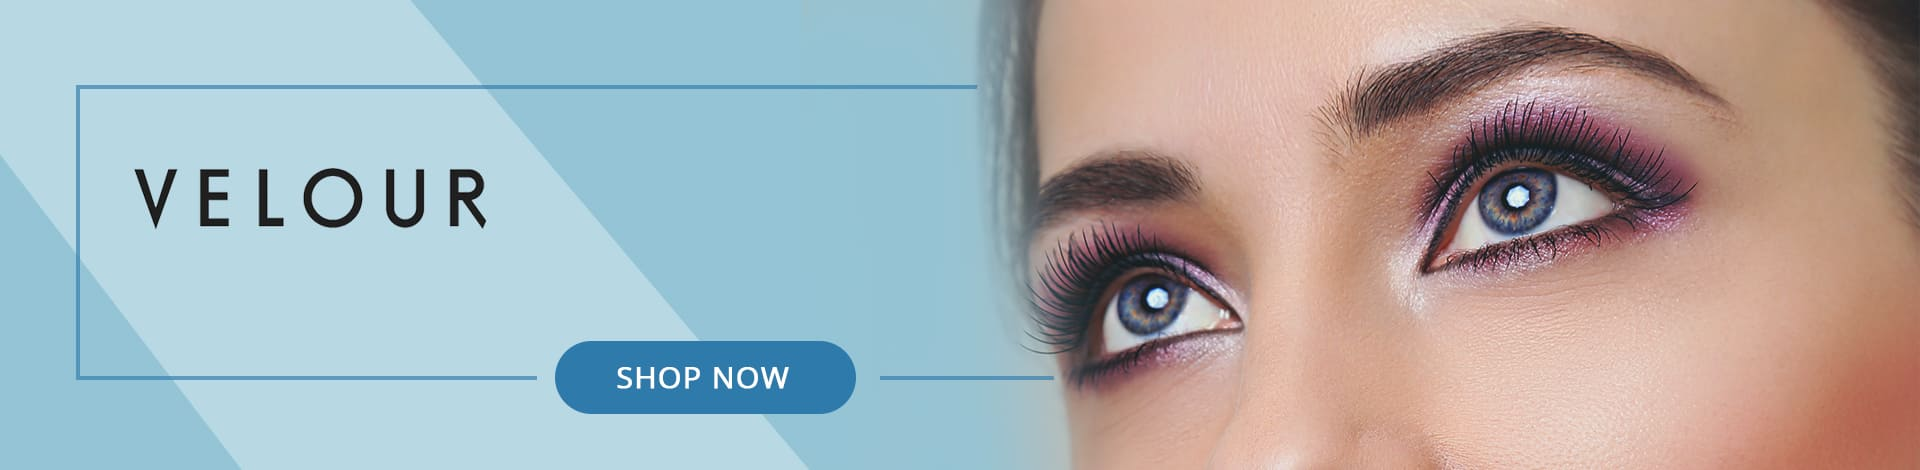 Velour Lashes banner 114